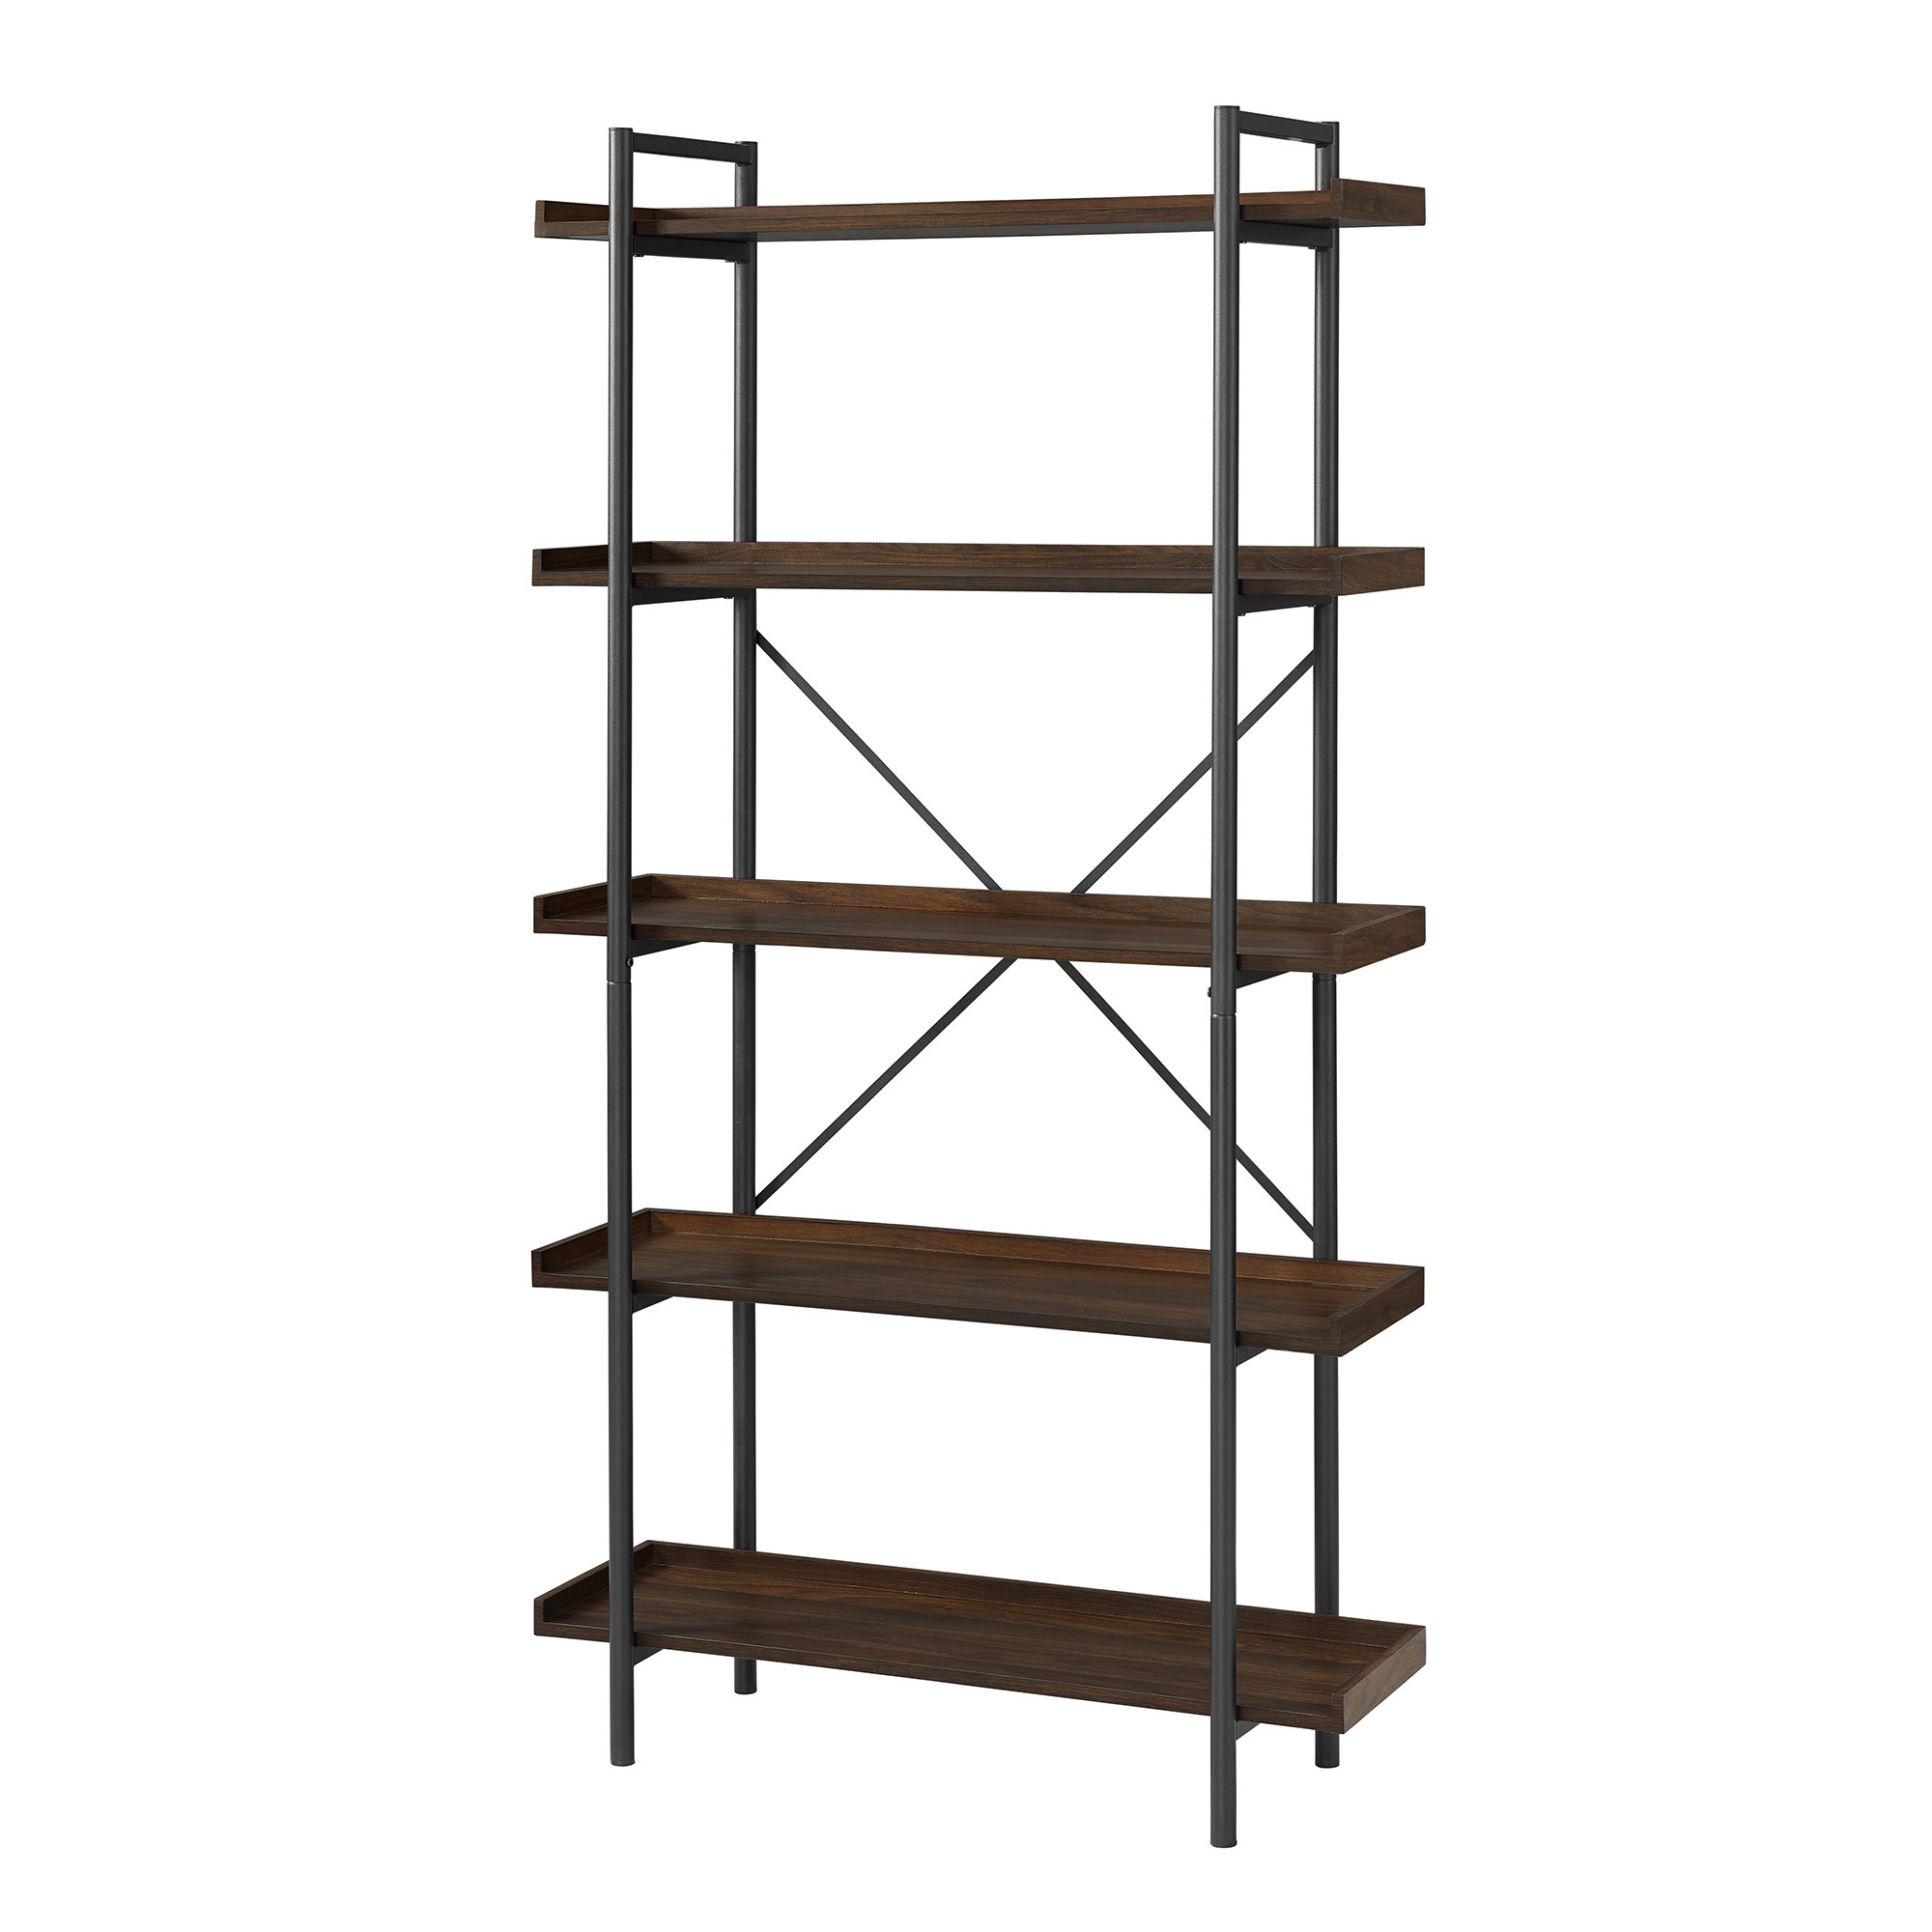 Favorite Swindell Etagere Bookcases Pertaining To Williston Forge Swindell Etagere Bookcase (View 3 of 20)